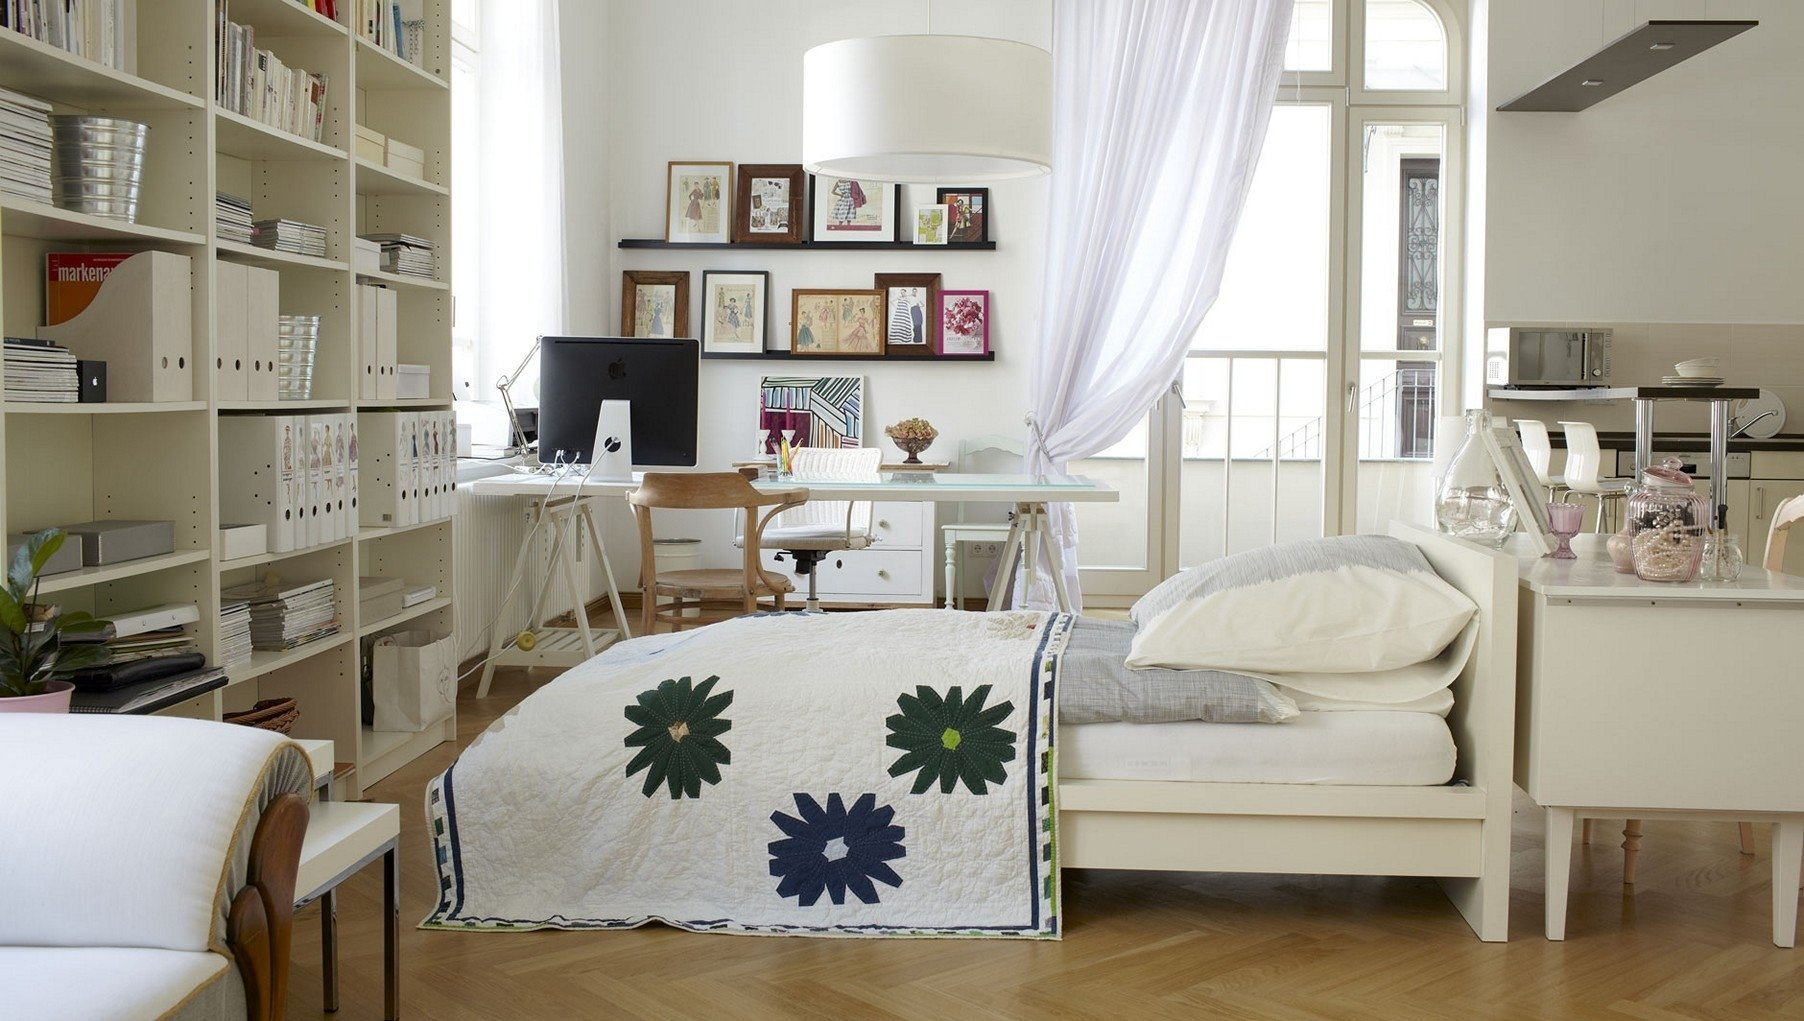 10 Perfect Creative Storage Ideas For Small Bedrooms incredibly creative smart bedroom storage ideas homestylediary 2021